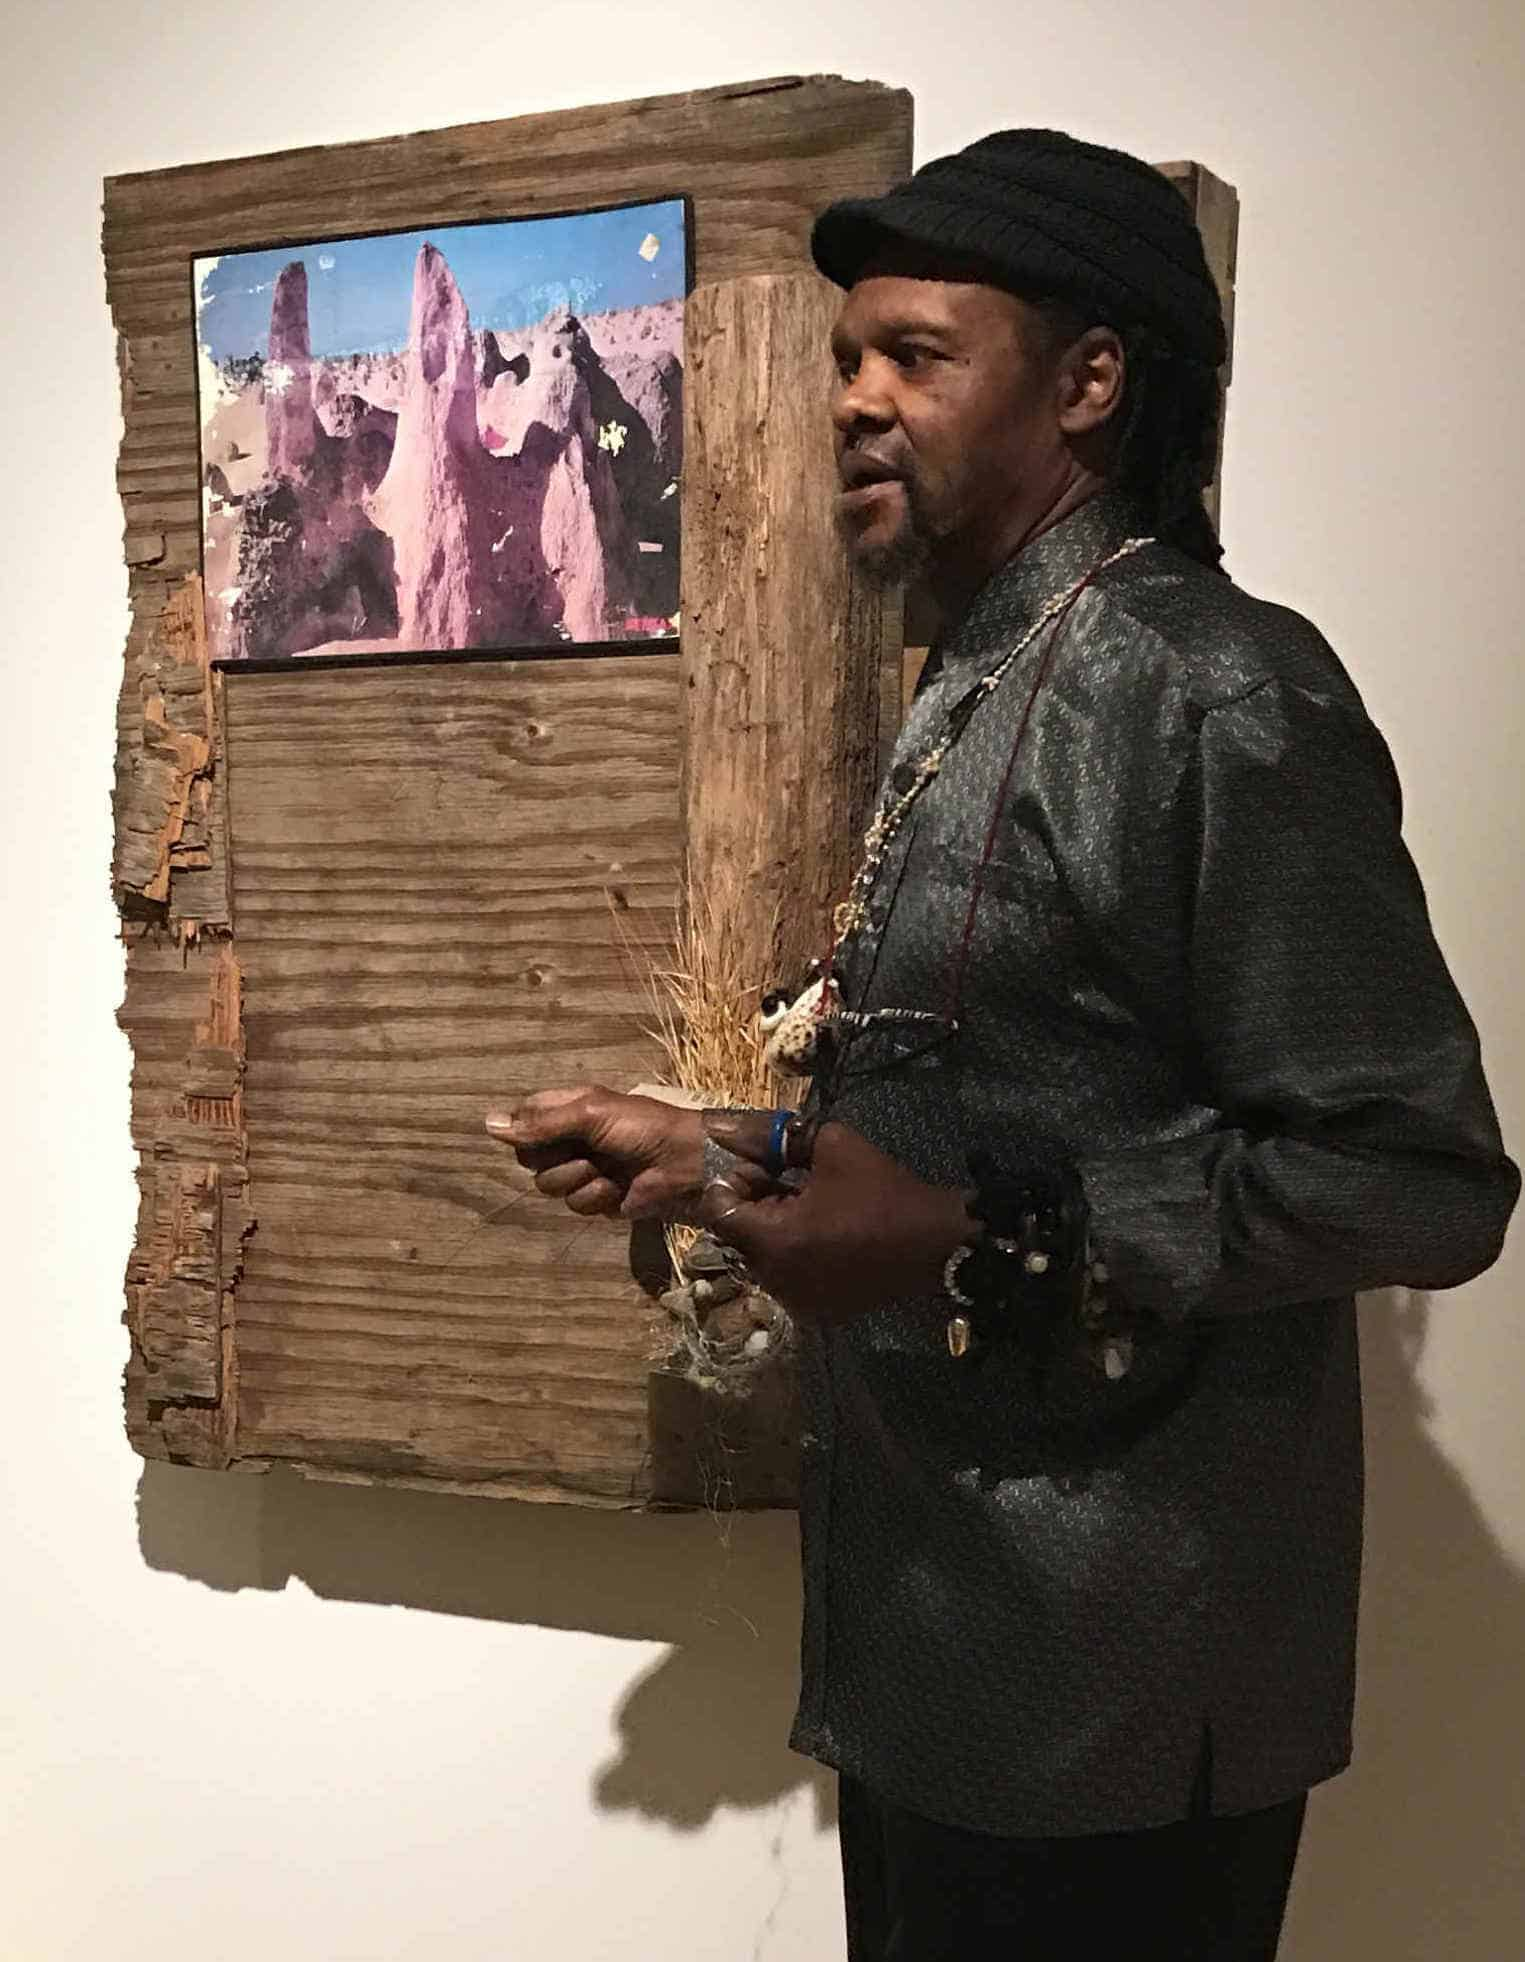 Lonnie Holley talks about his work in a collaboration with Dawn DeDeaux, Thumbs Up for the Mothership, in Mass MoCA's new Building 6. Photo by Kate Abbott